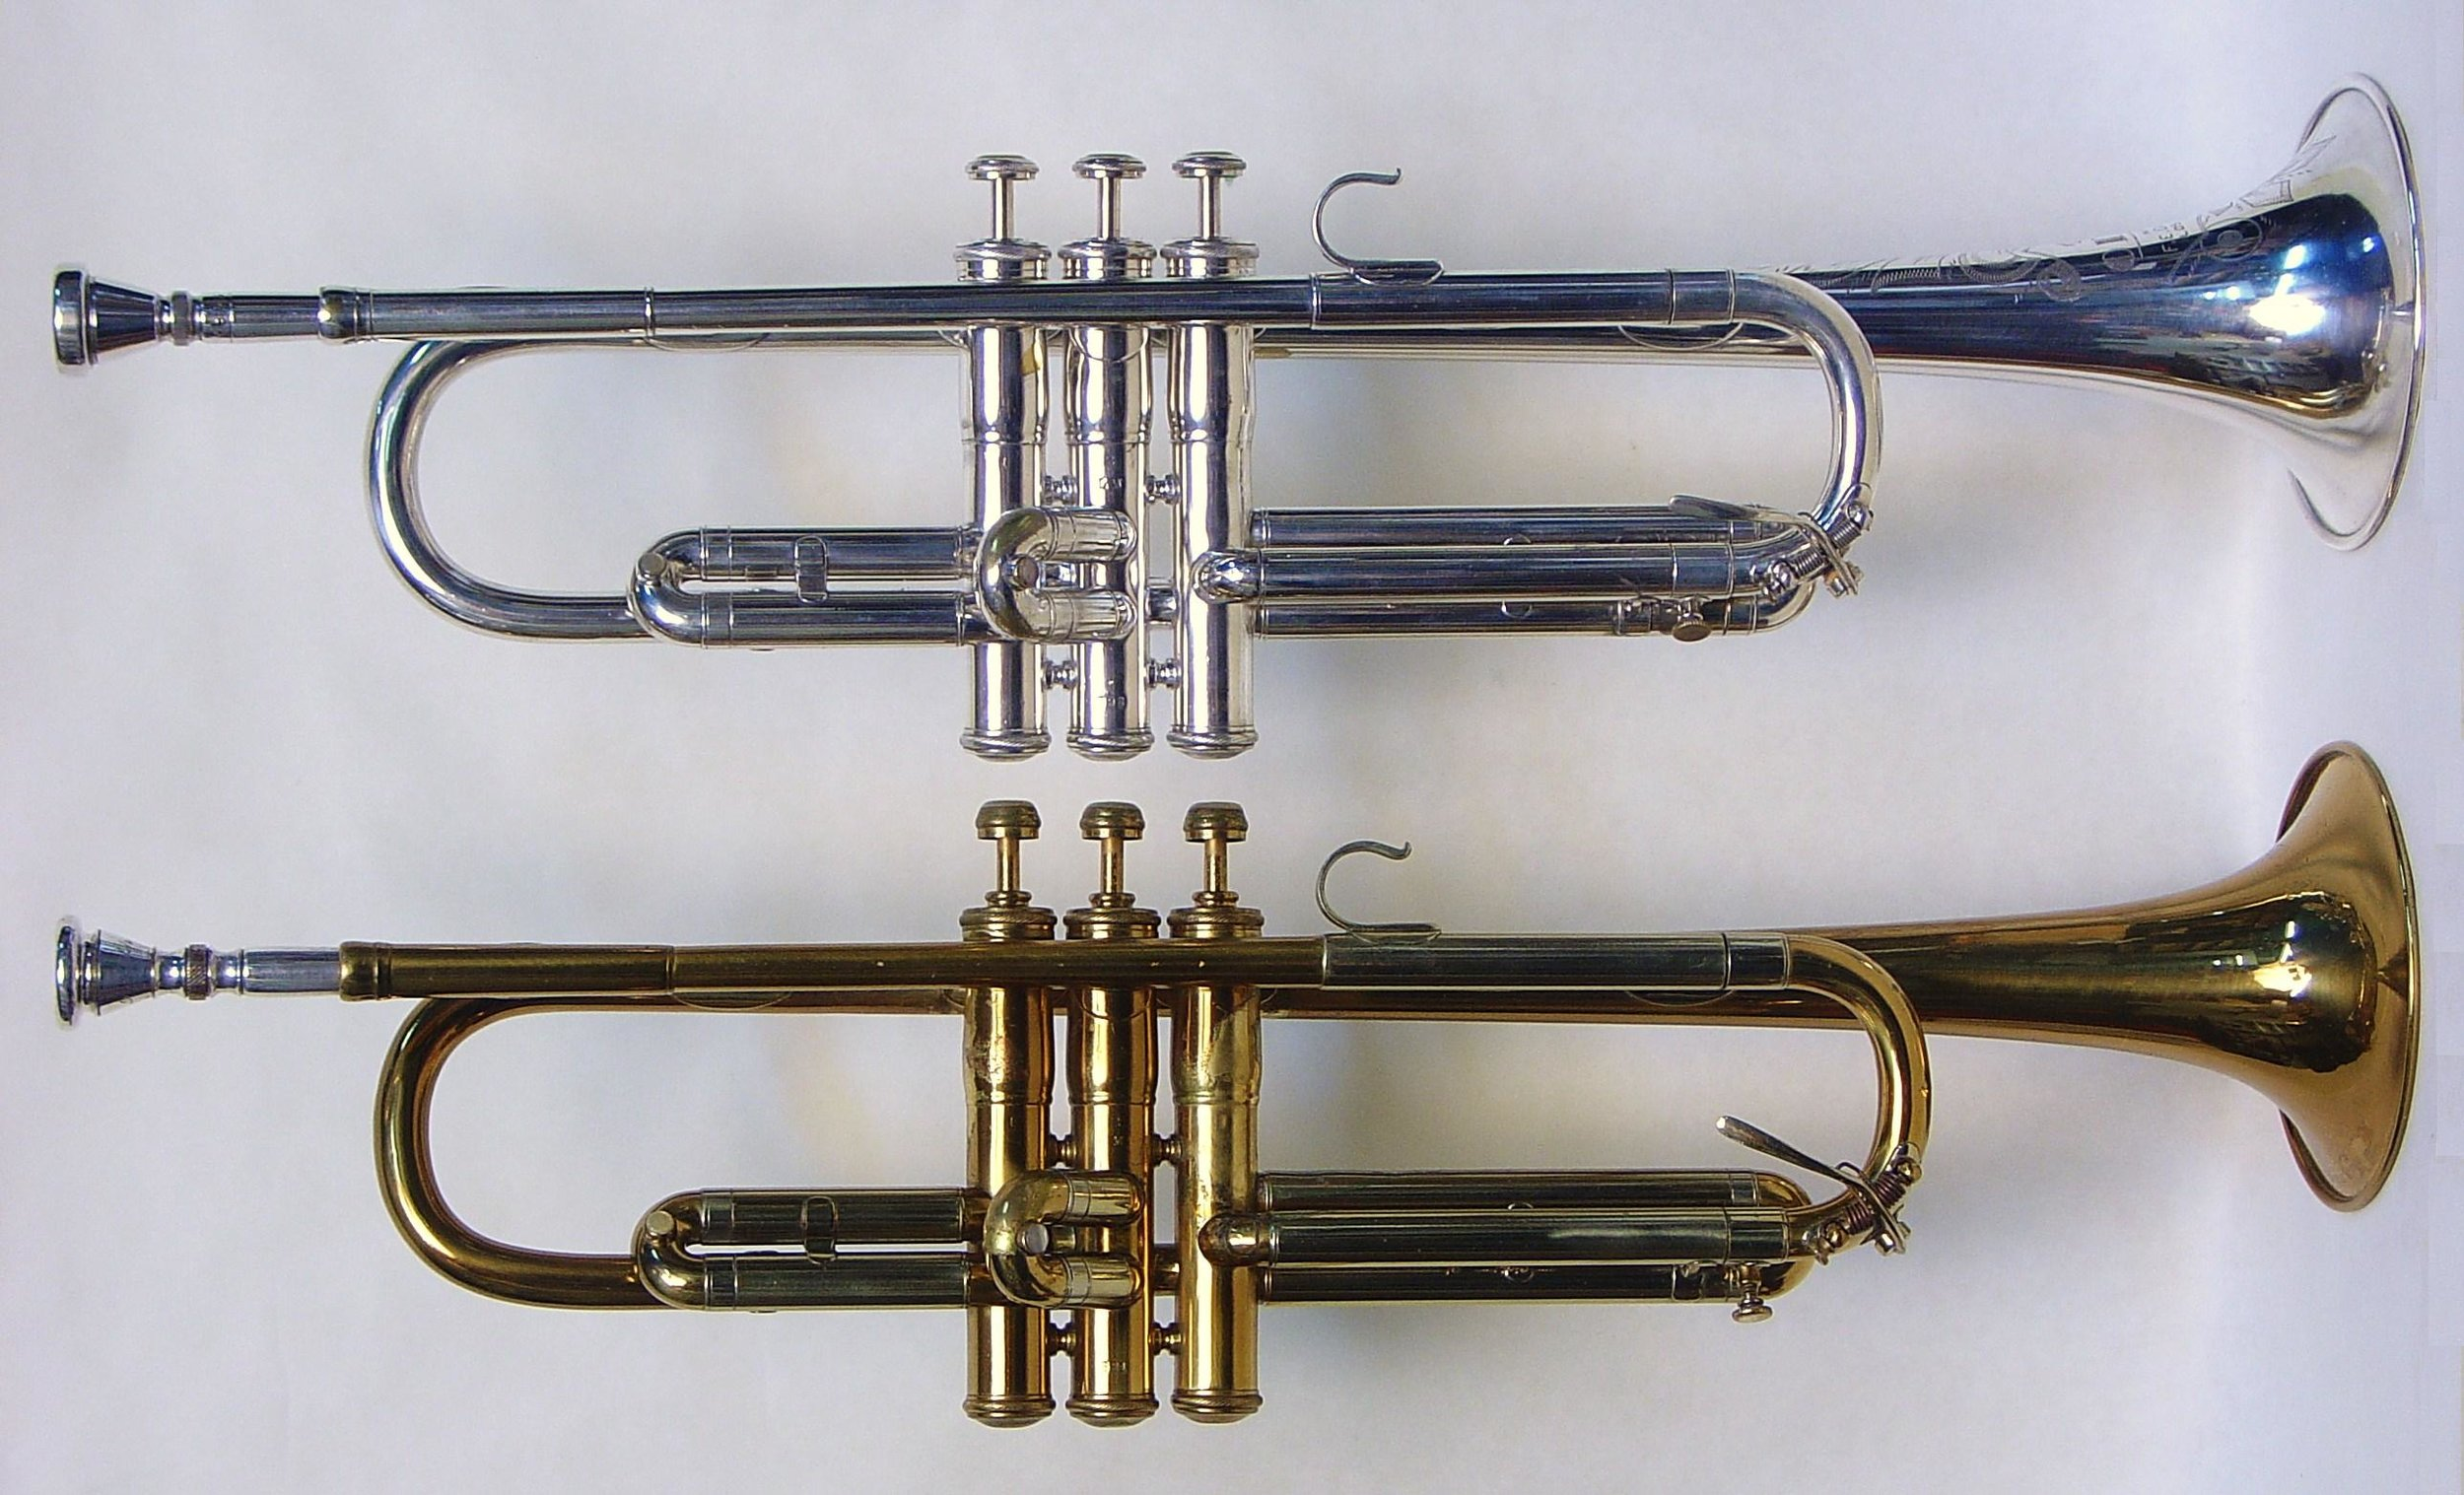 Early Olds Trumpets